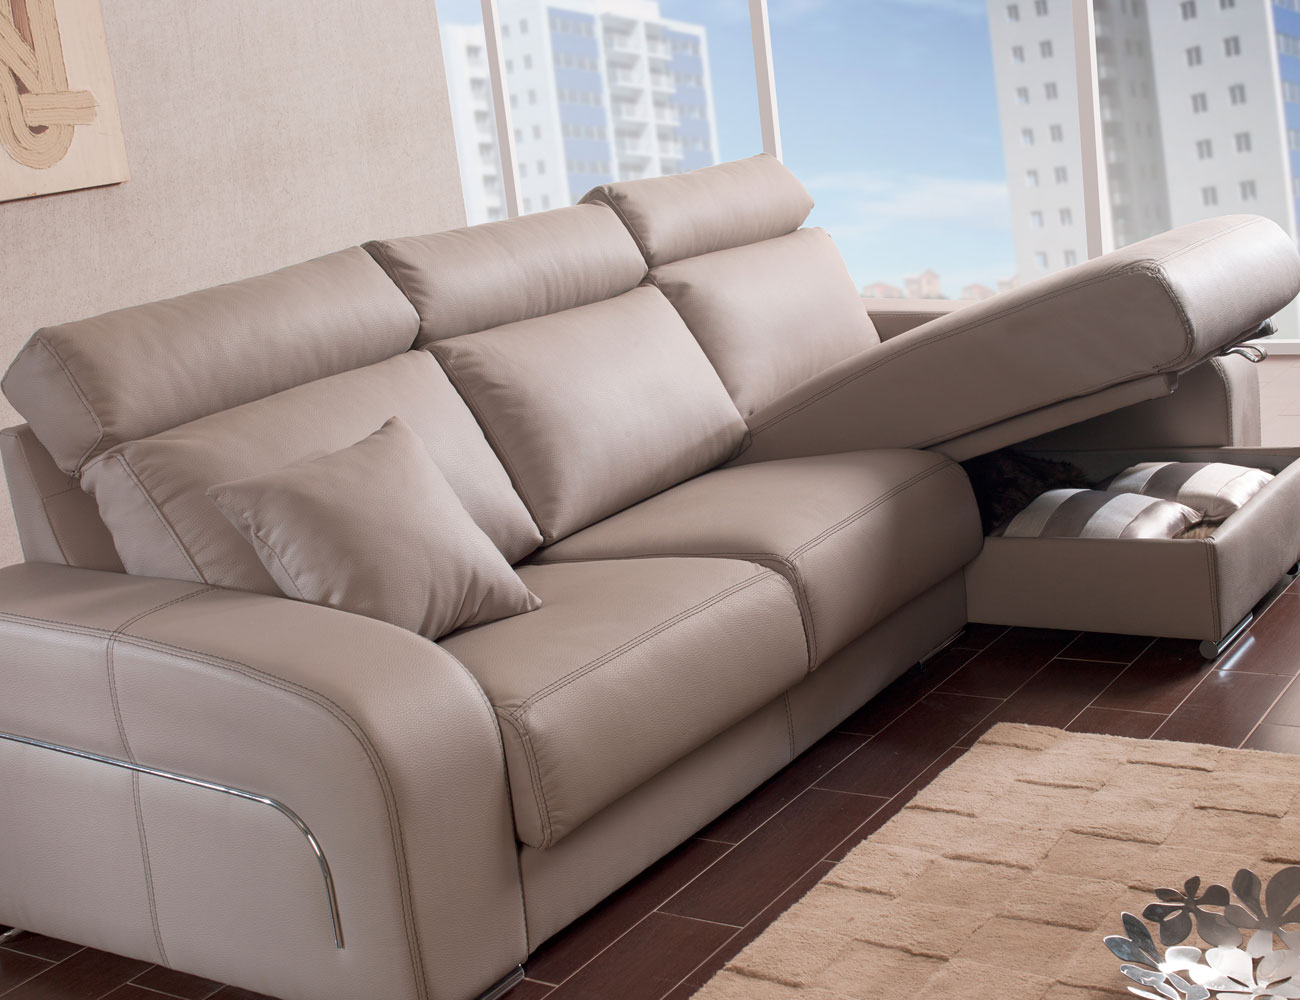 Sofa chaiselongue moderno pared cero arcon